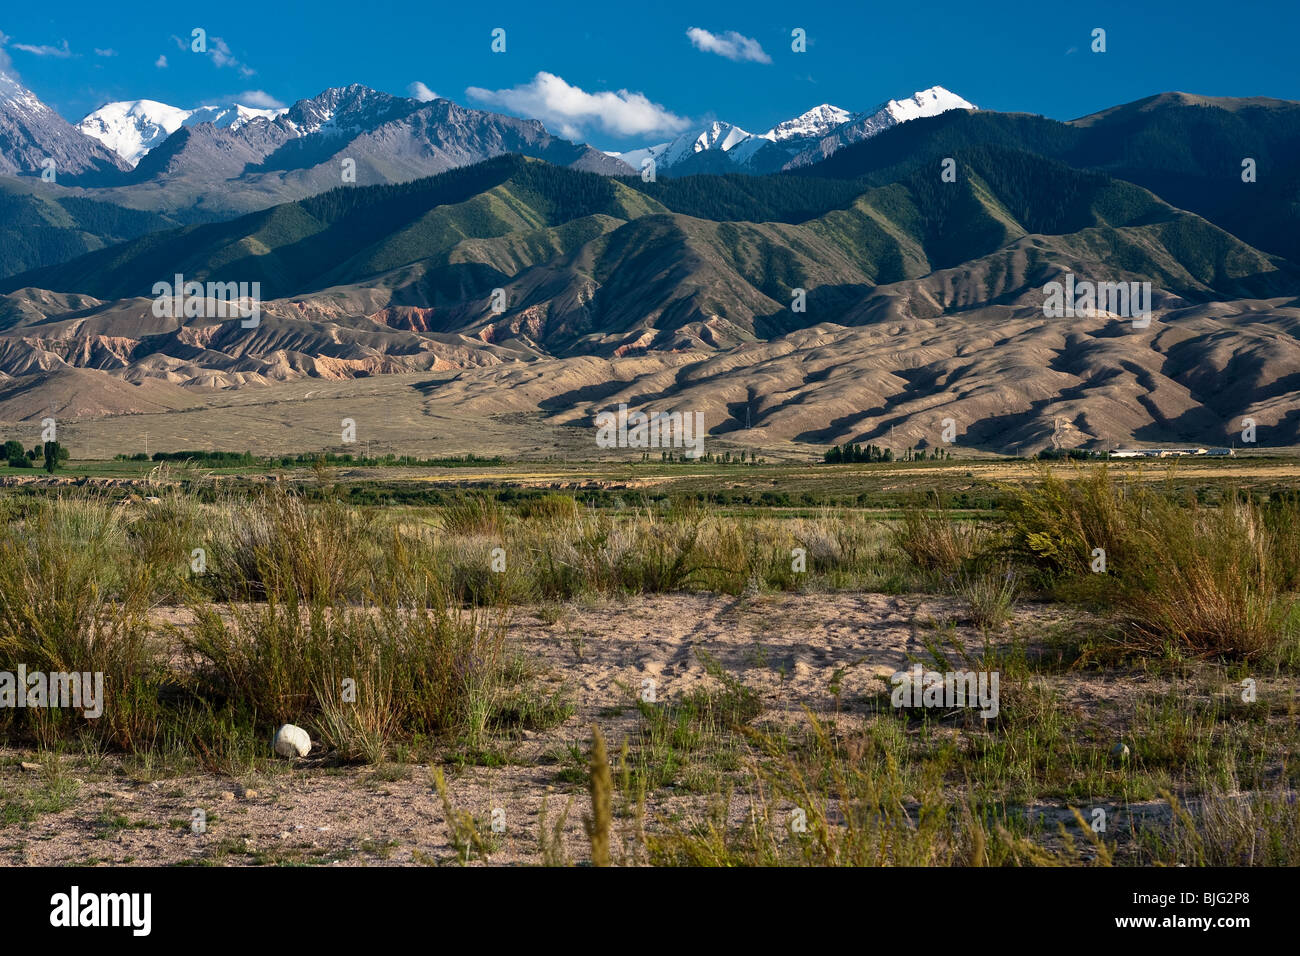 Landscape with dry plain in front and snow capped mountains in the back, Kazakhstan - Stock Image